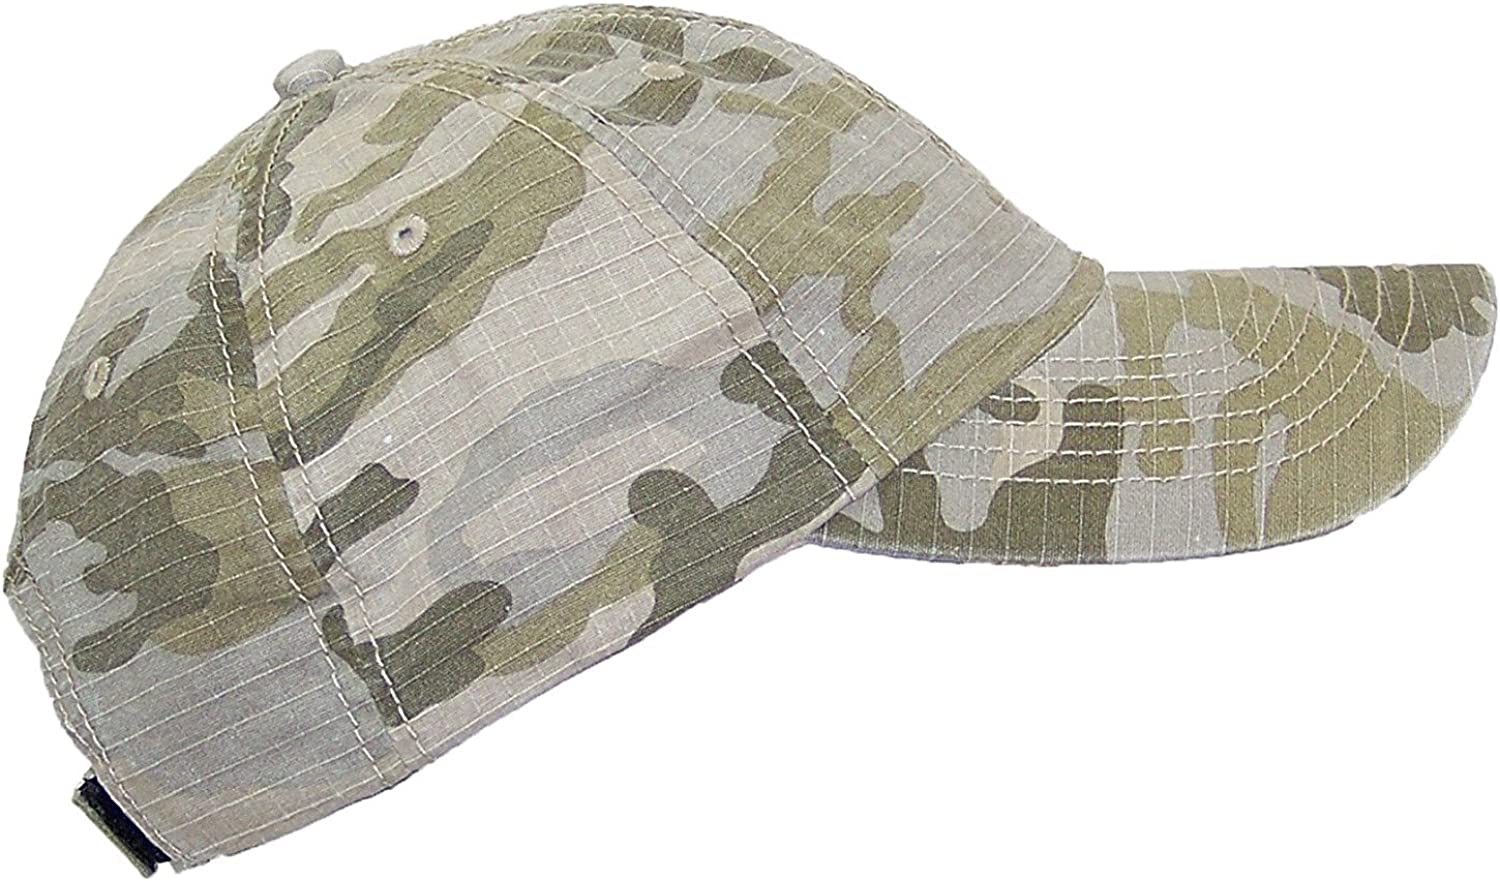 MG Unisex Unstructured Ripstop Camouflage Adjustable Ballcap